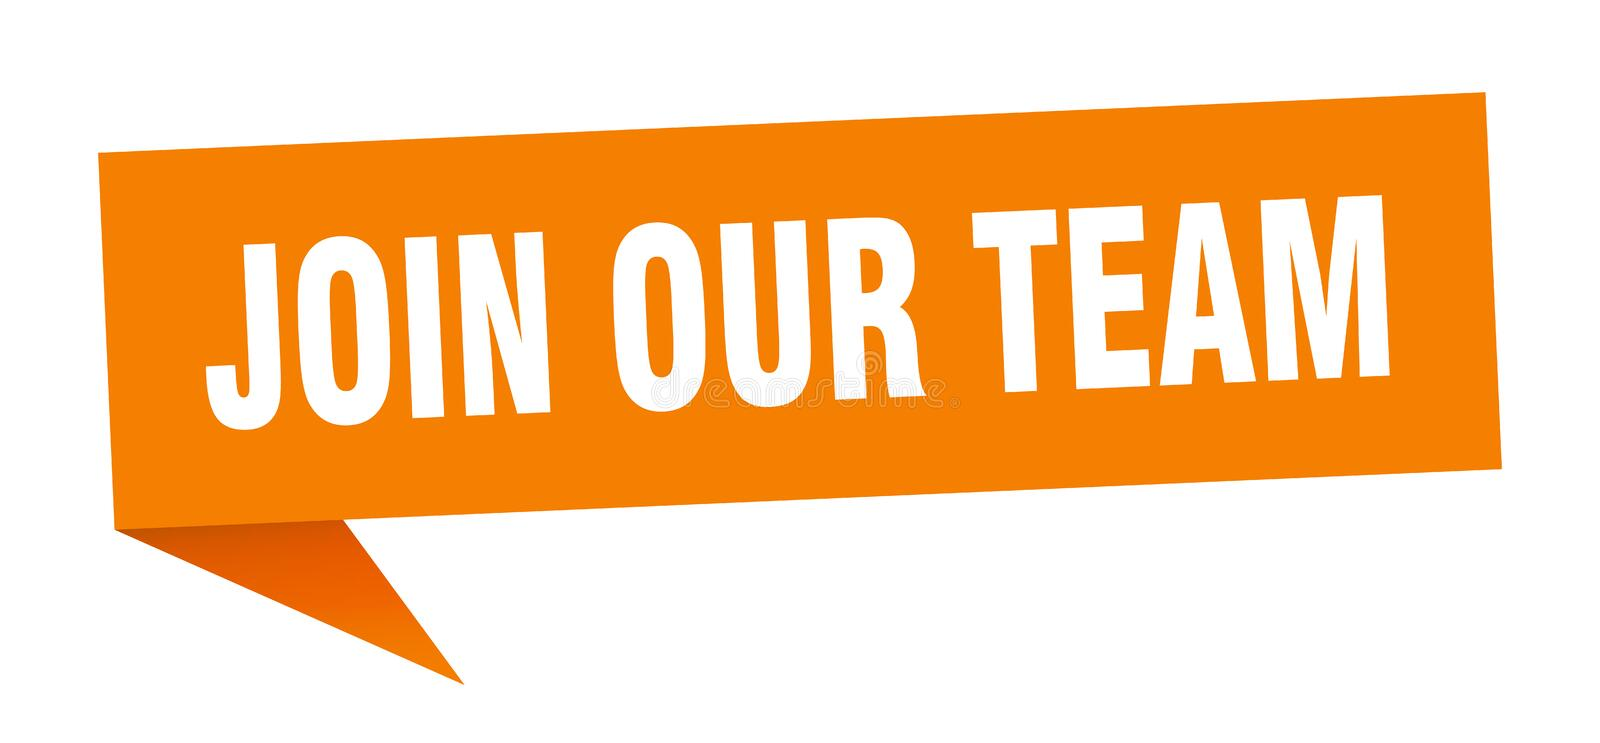 Join our team speech bubble. Join our team sign. join our team vector illustration